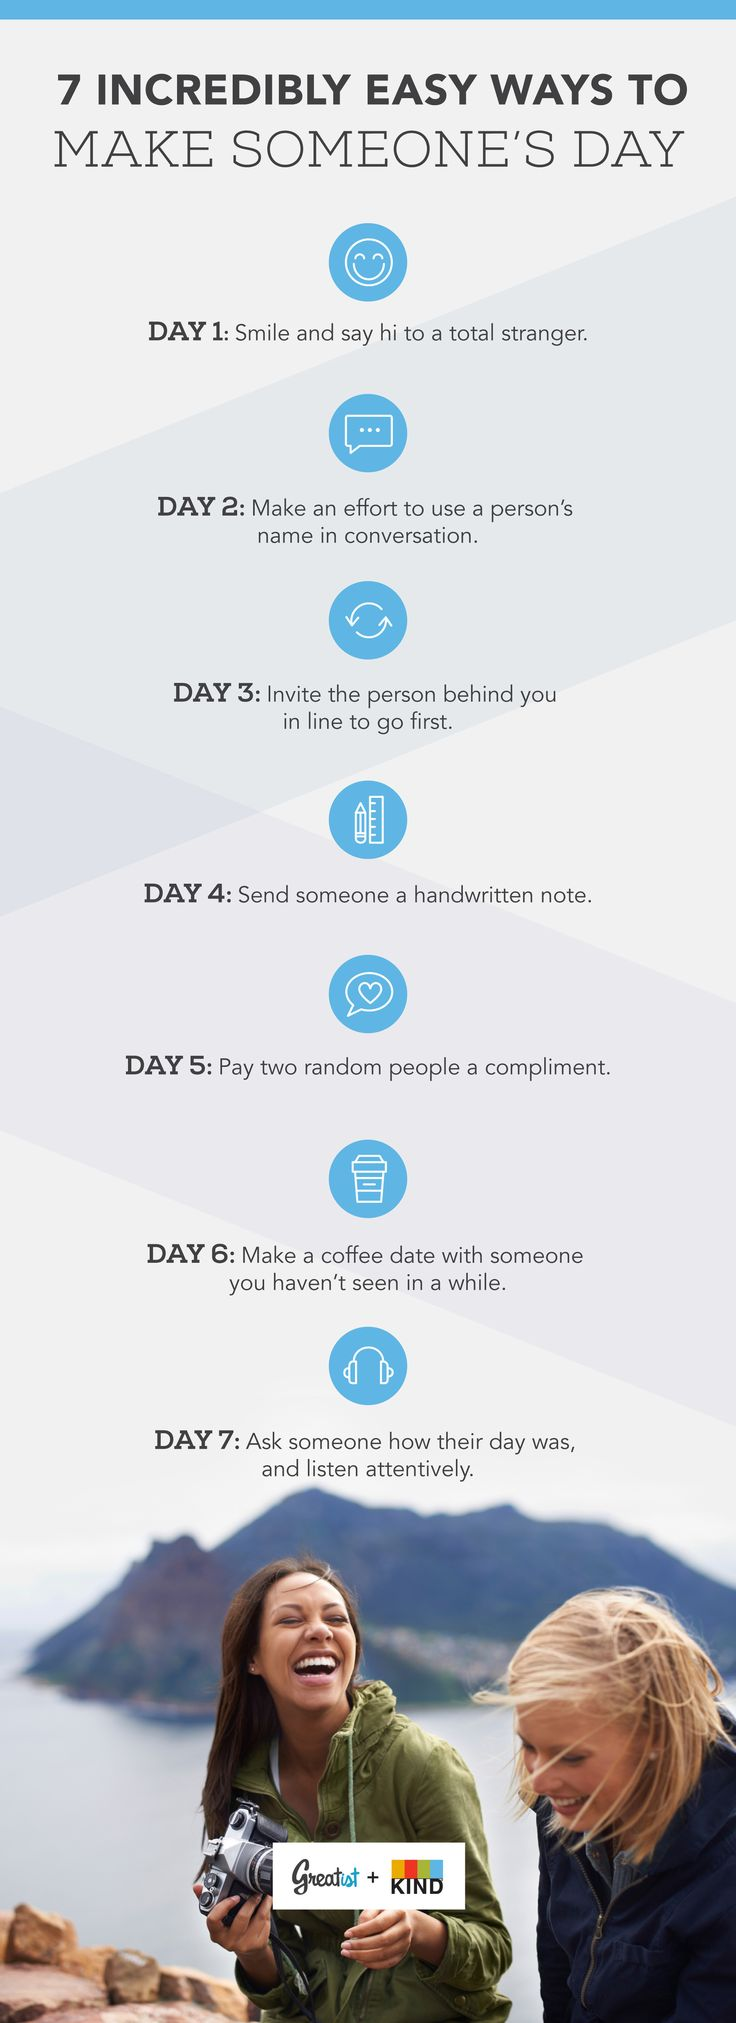 7 Incredibly Easy Ways to Make Someone's Day This Week #letsreconnect #healthy #relationships http://greatist.com/connect/easy-ways-to-make-someones-day